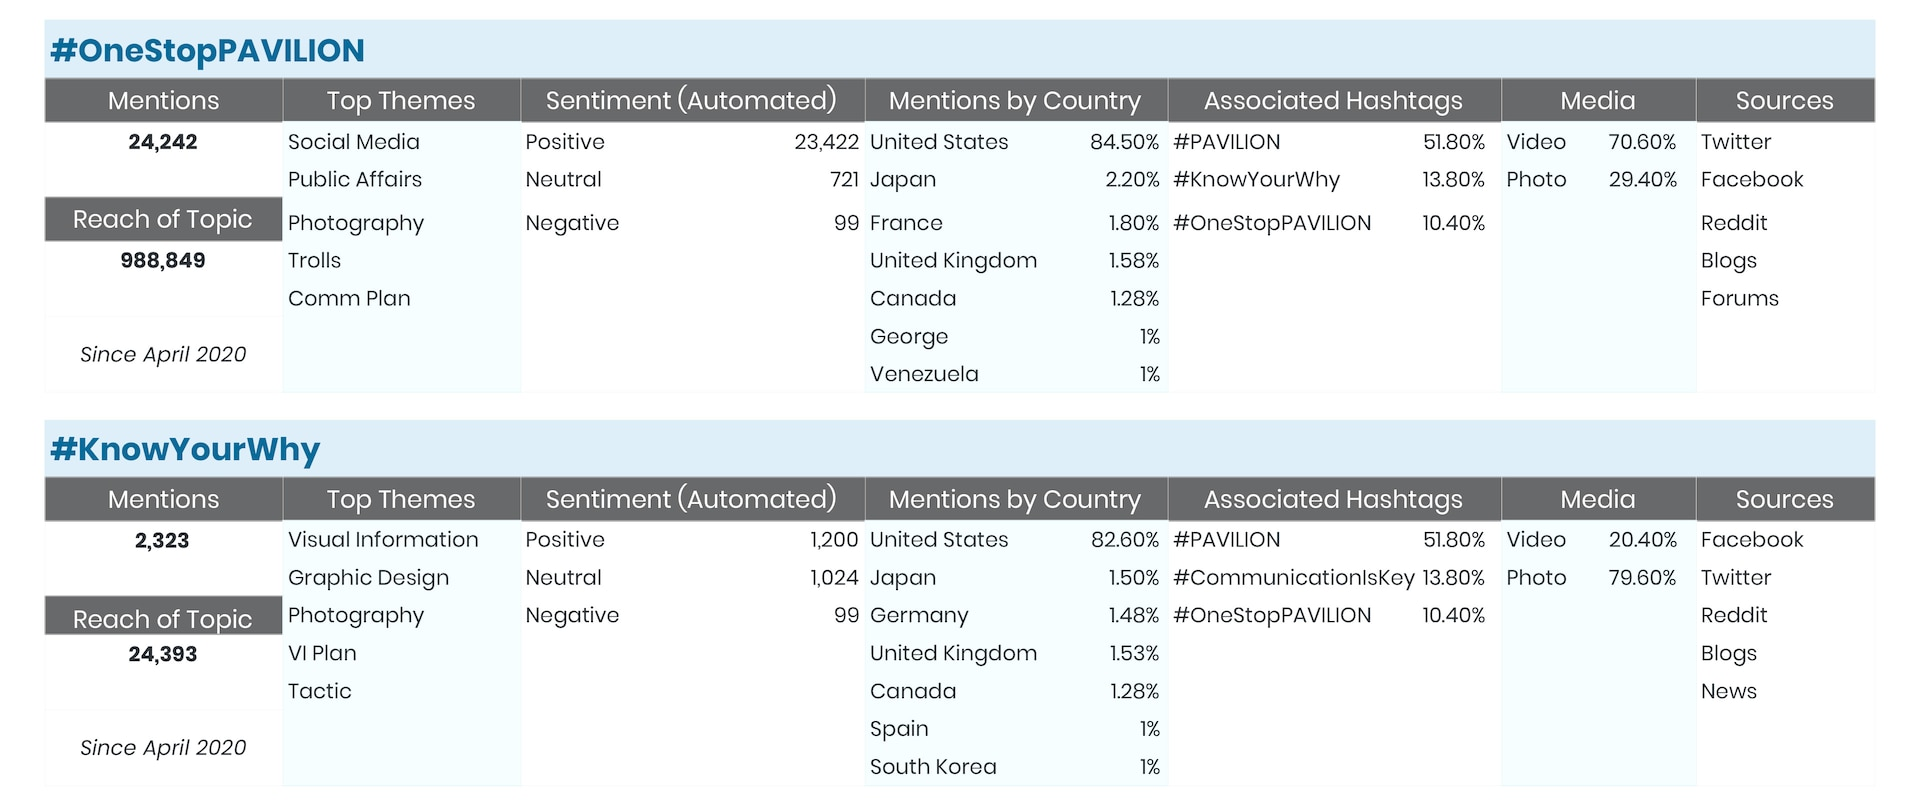 Example of social media related analytics collected for two hashtag campaigns for PAVILION.